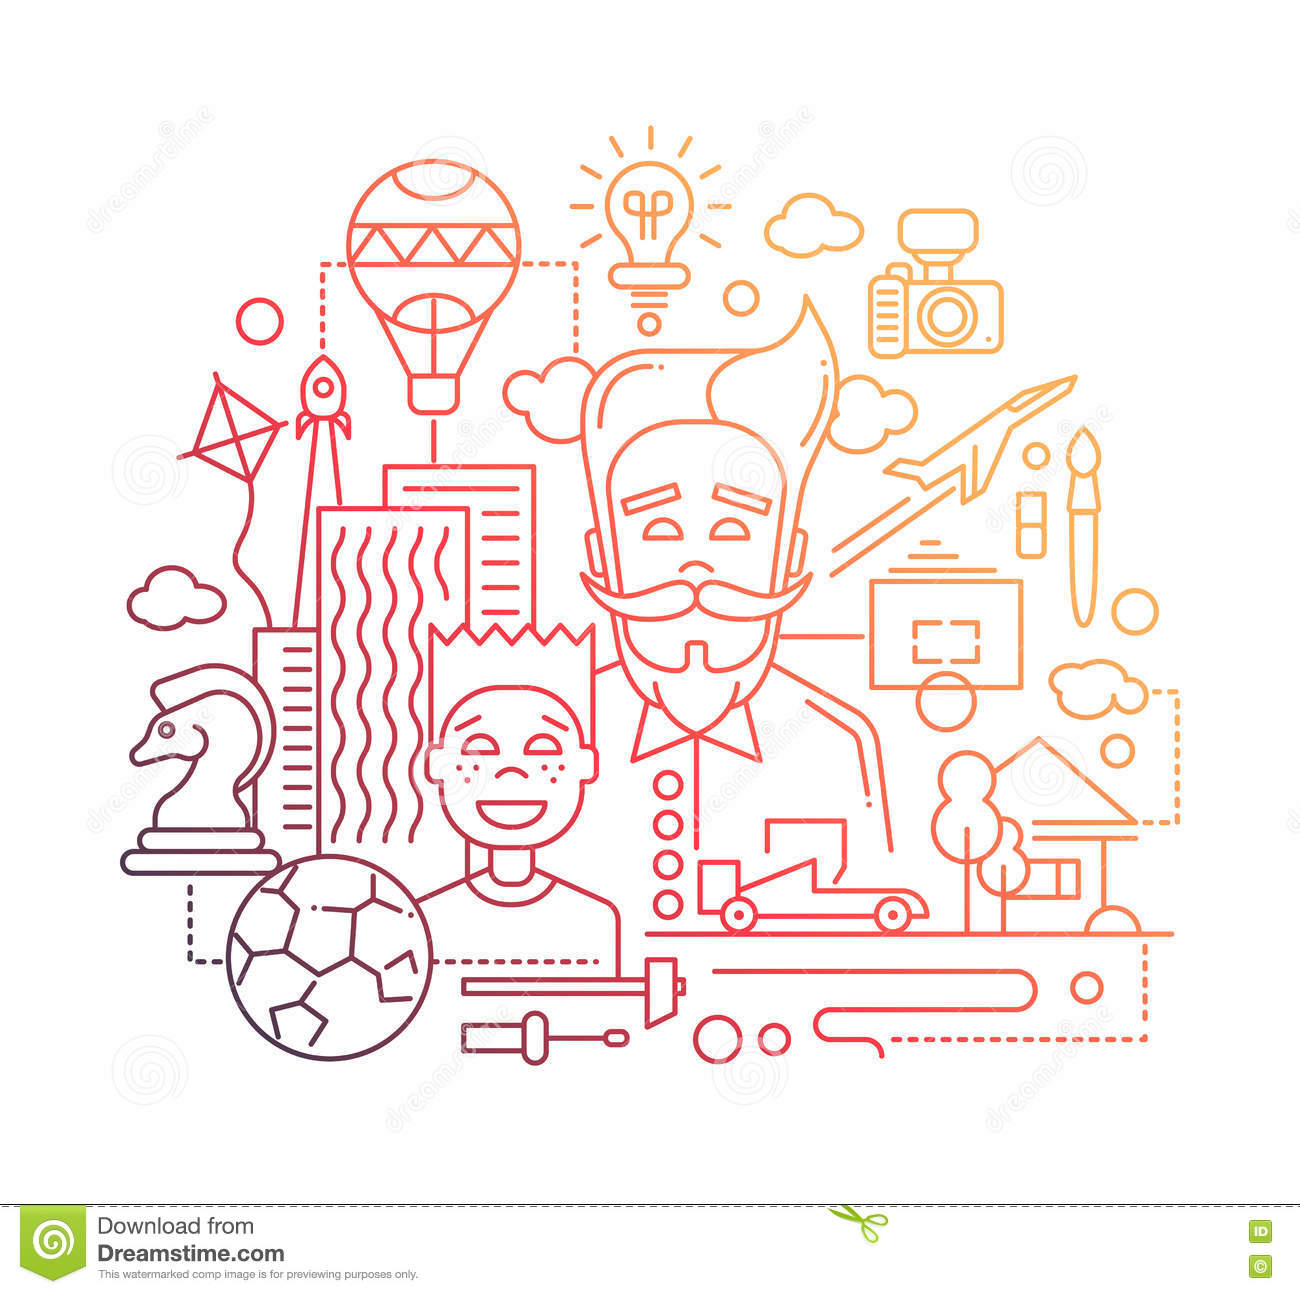 common interests hobbies father and son line design common interests hobbies father and son line design illustration